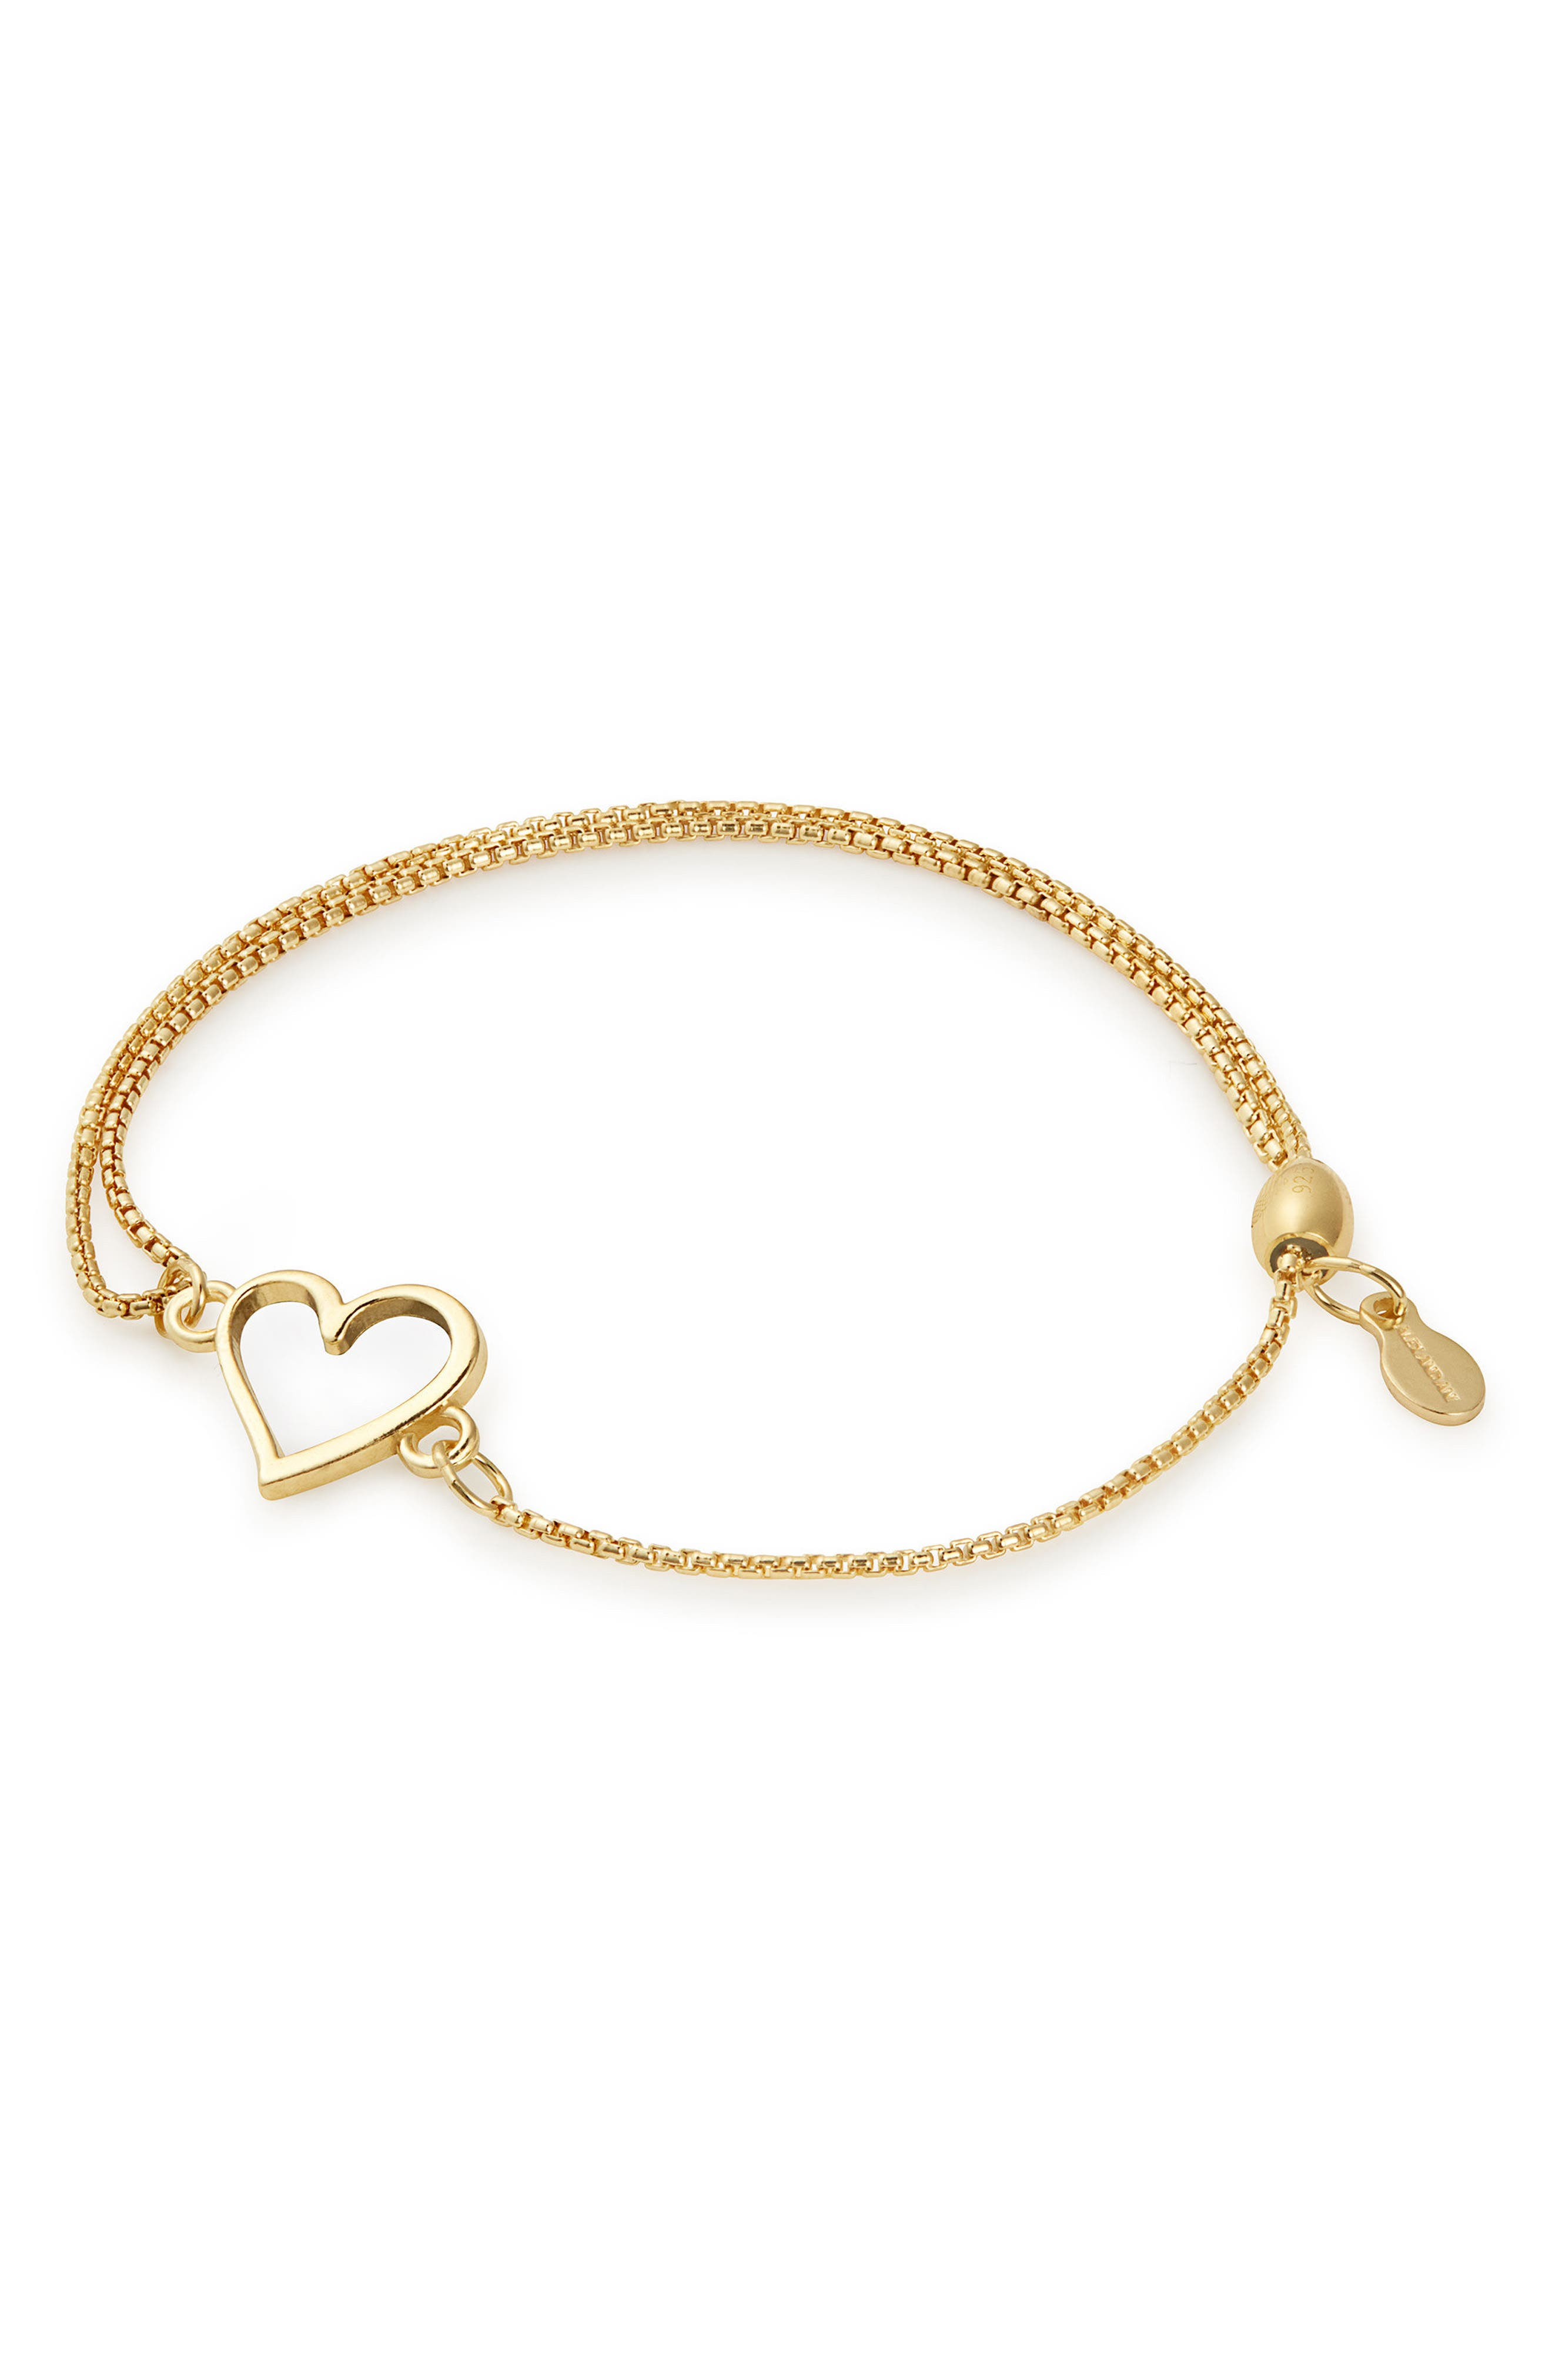 Main Image - Alex and Ani Heart Pull Chain Bracelet